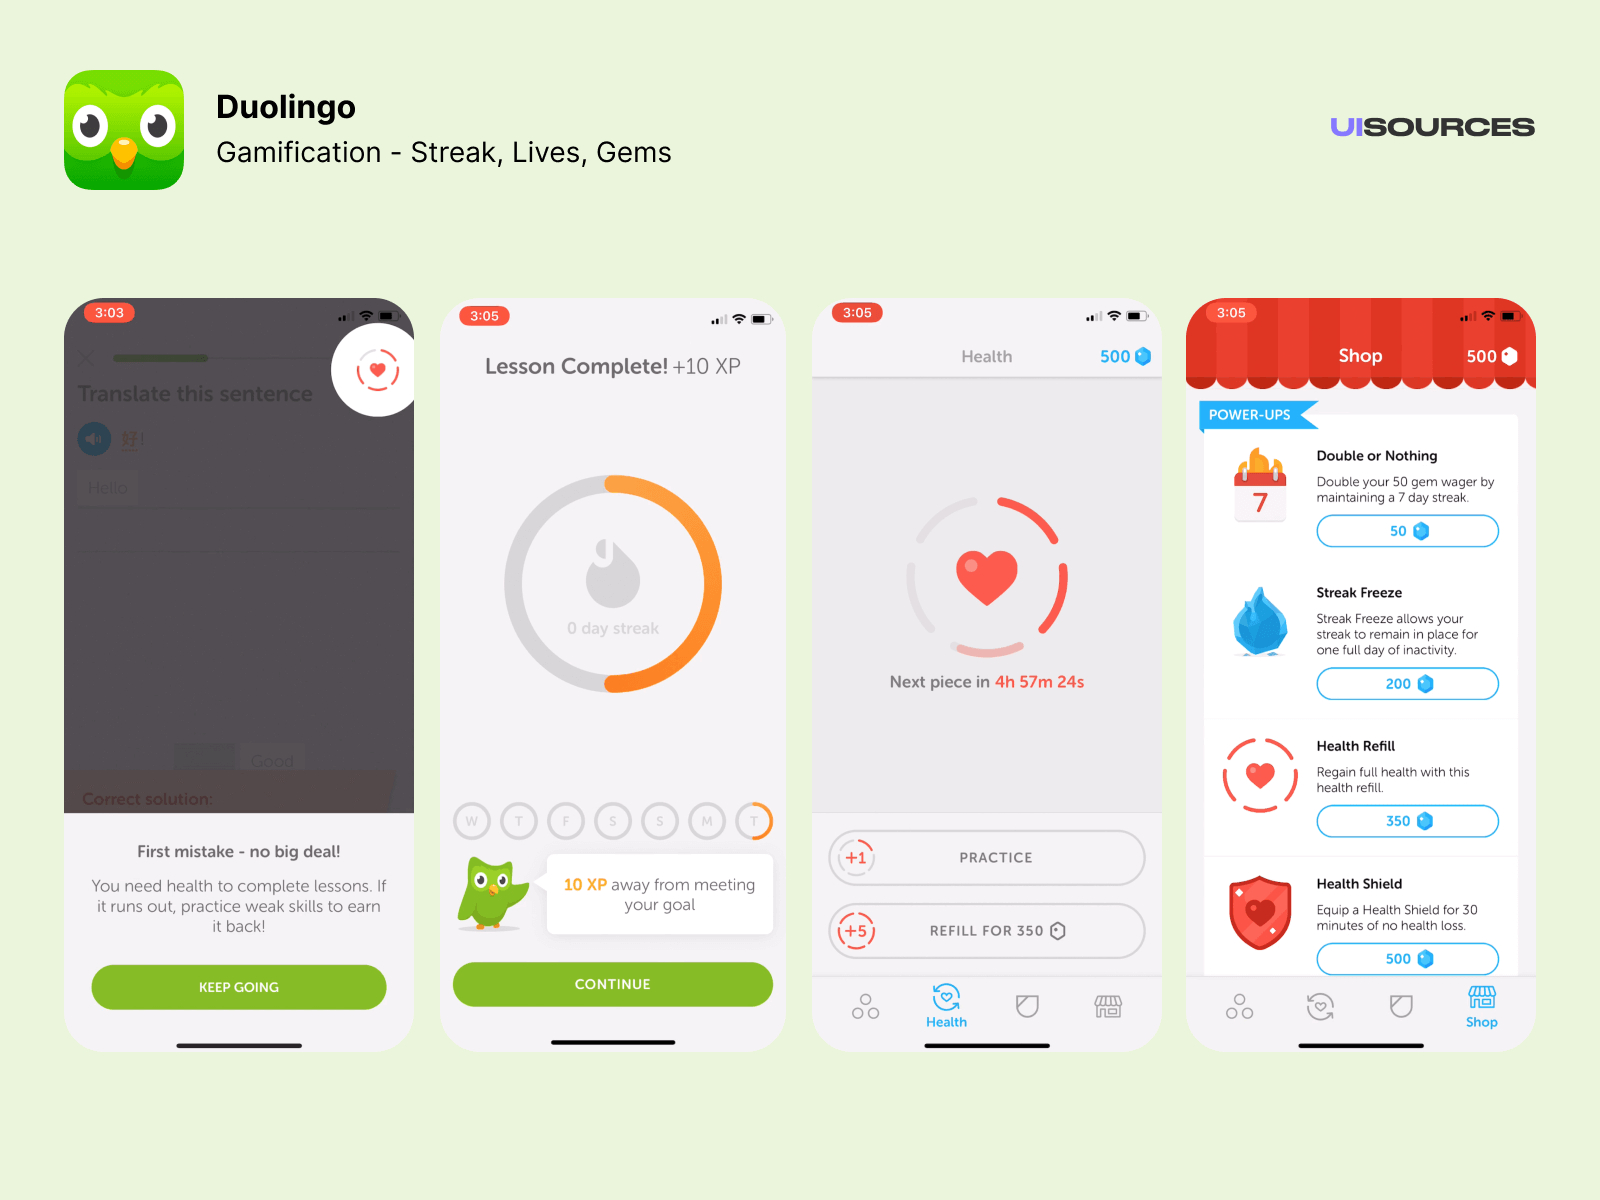 09 duolingo gamification daily streak lives gems